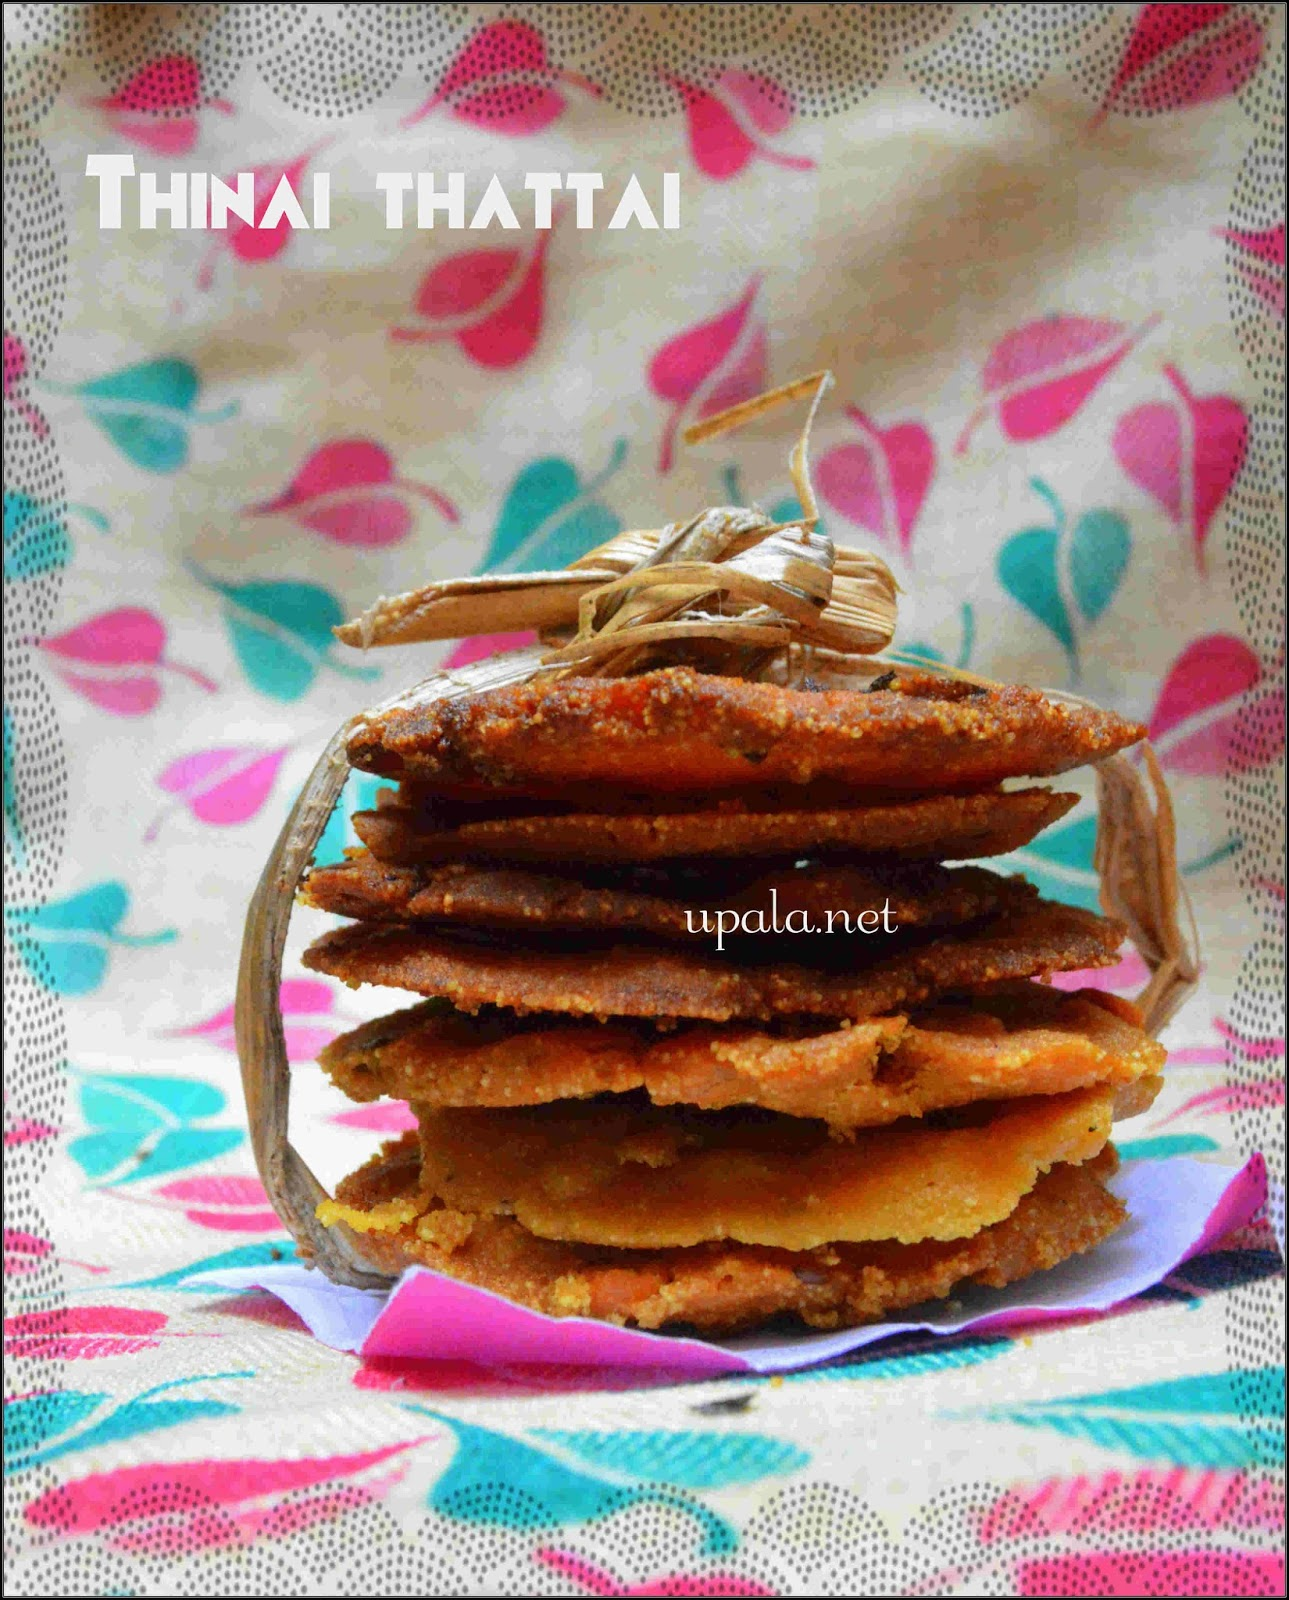 Thinai thattai